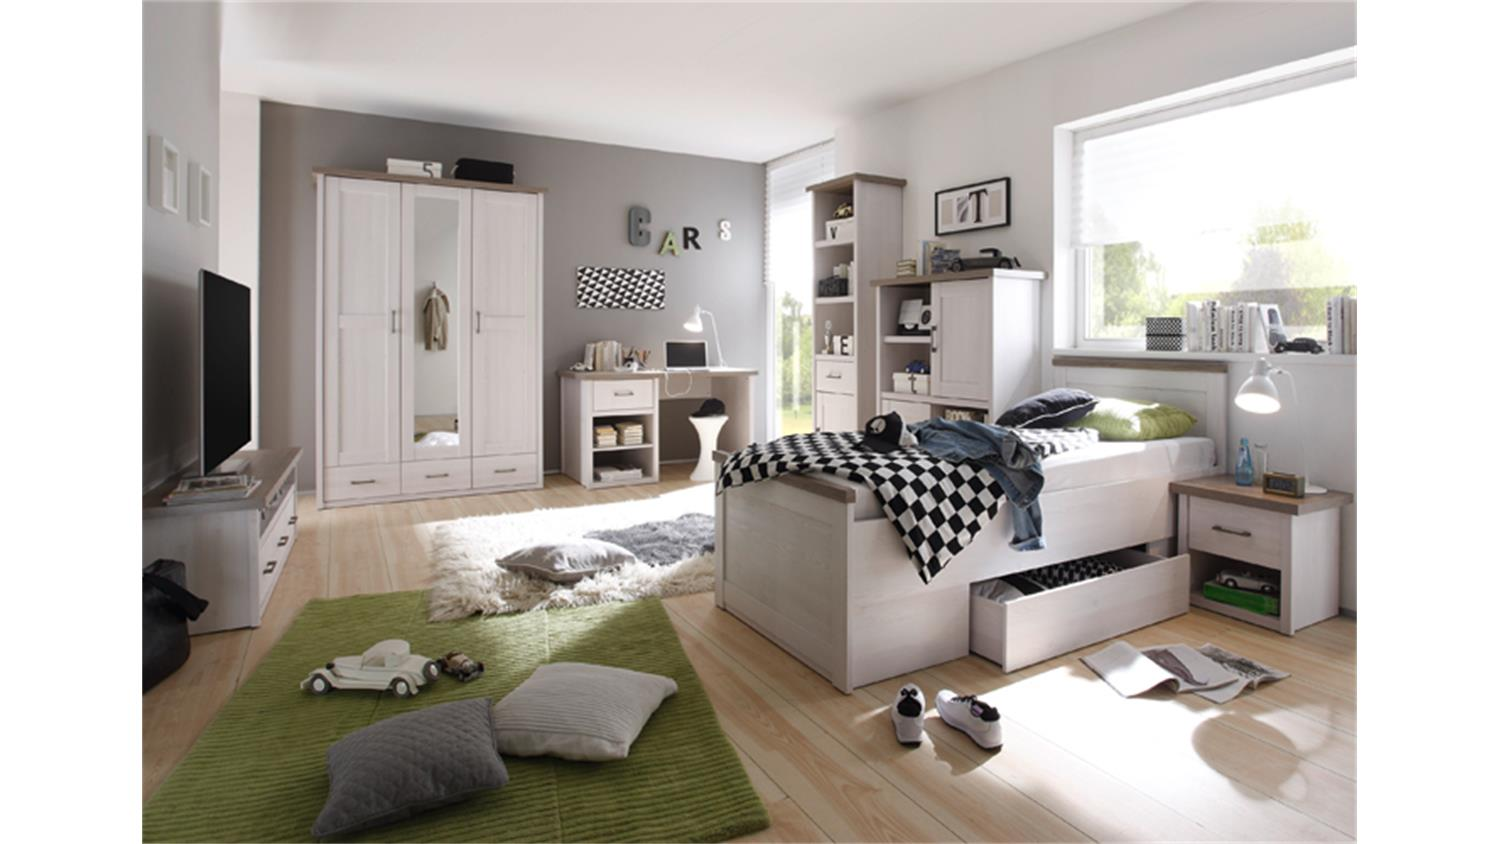 jugendzimmer luca komplettset 2 pinie wei und tr ffel 7 teilig. Black Bedroom Furniture Sets. Home Design Ideas